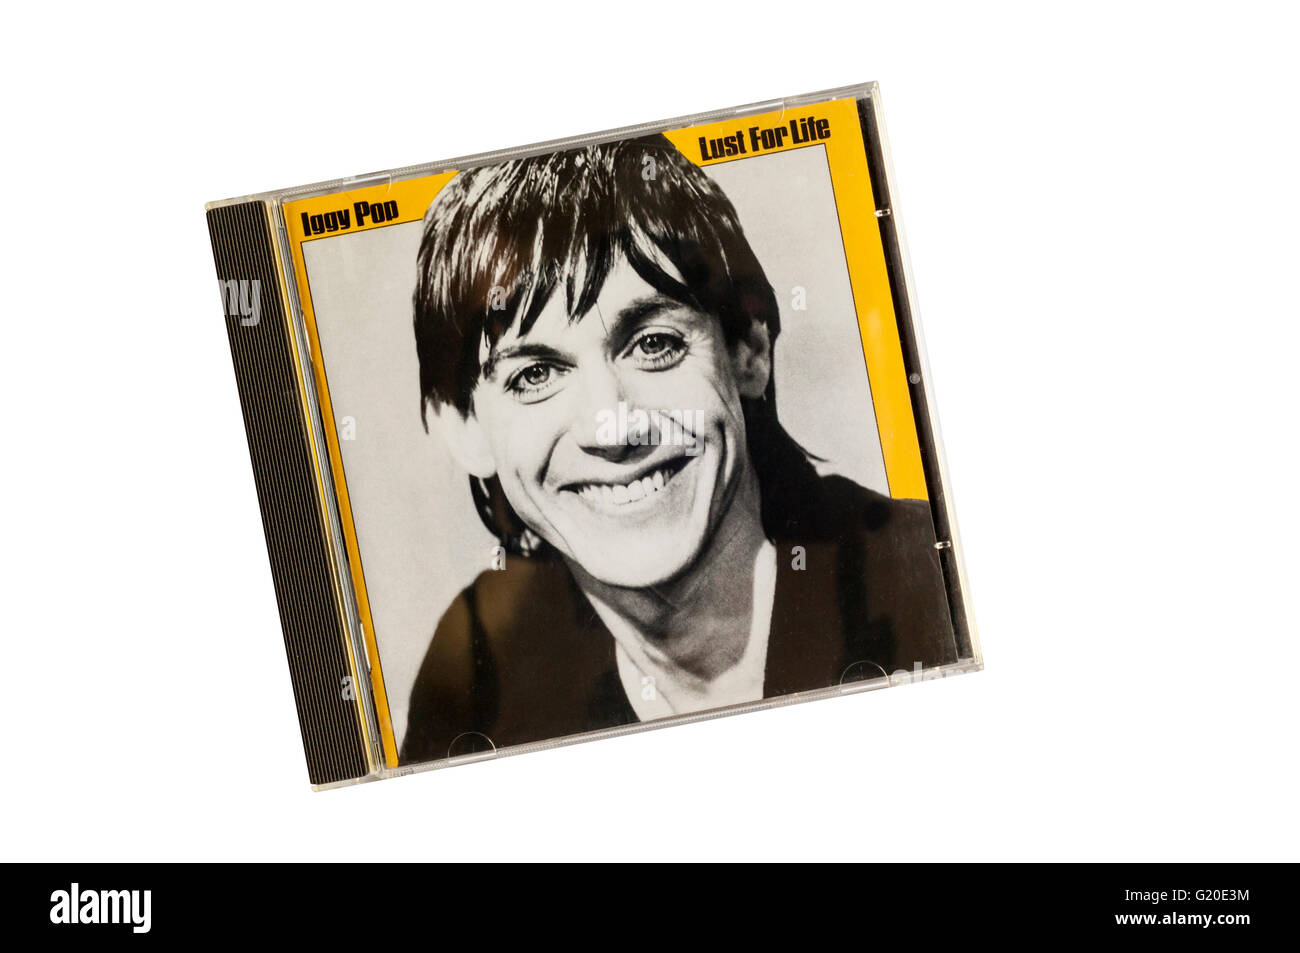 Lust for Life was the second studio album by Iggy Pop, and his second collaboration with David Bowie. - Stock Image